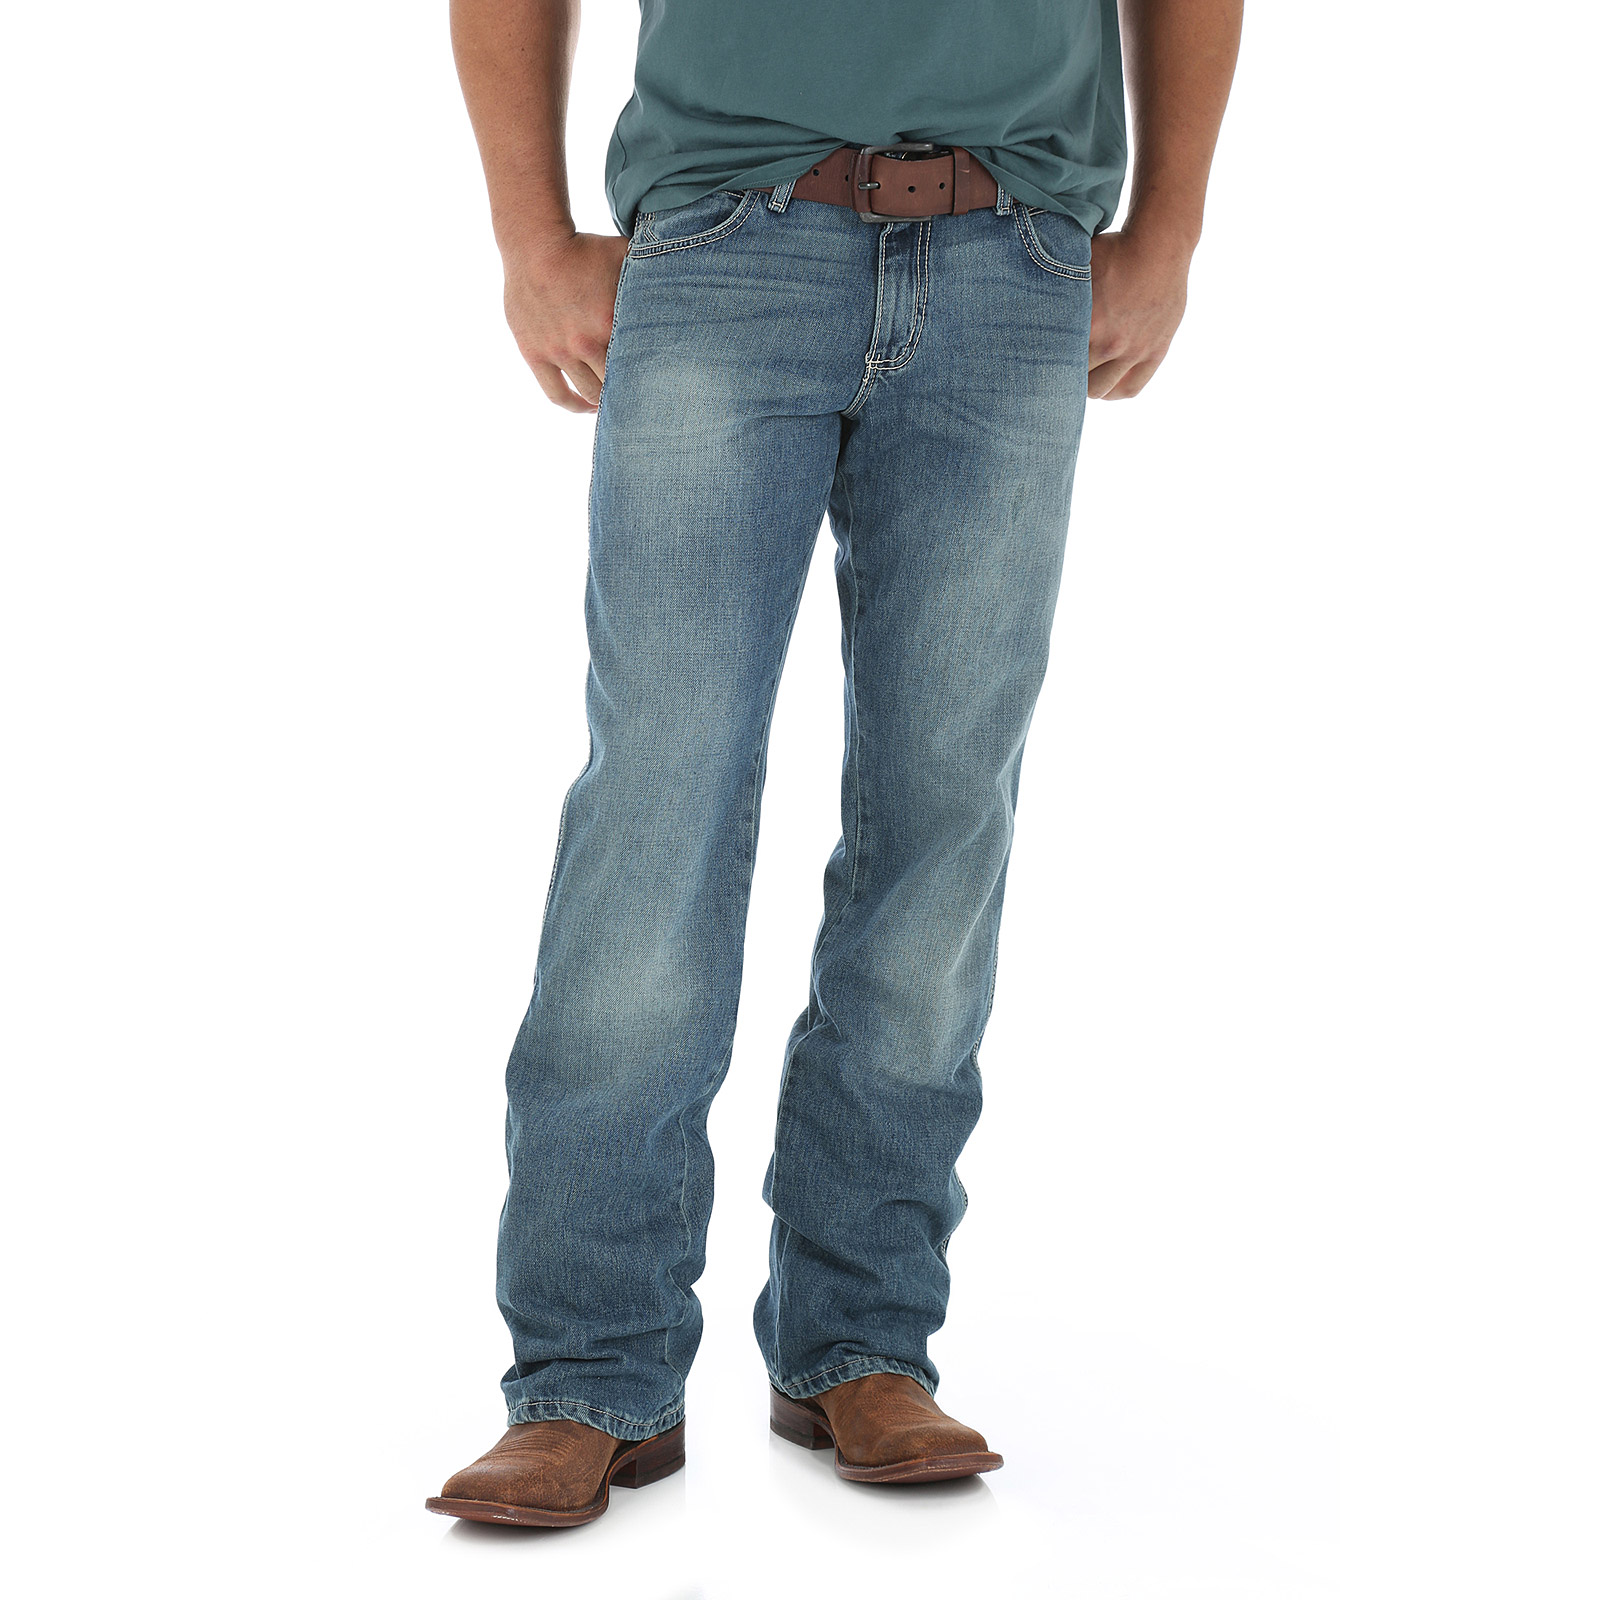 Are Bootcut Jeans In Style For Men Bbg Clothing